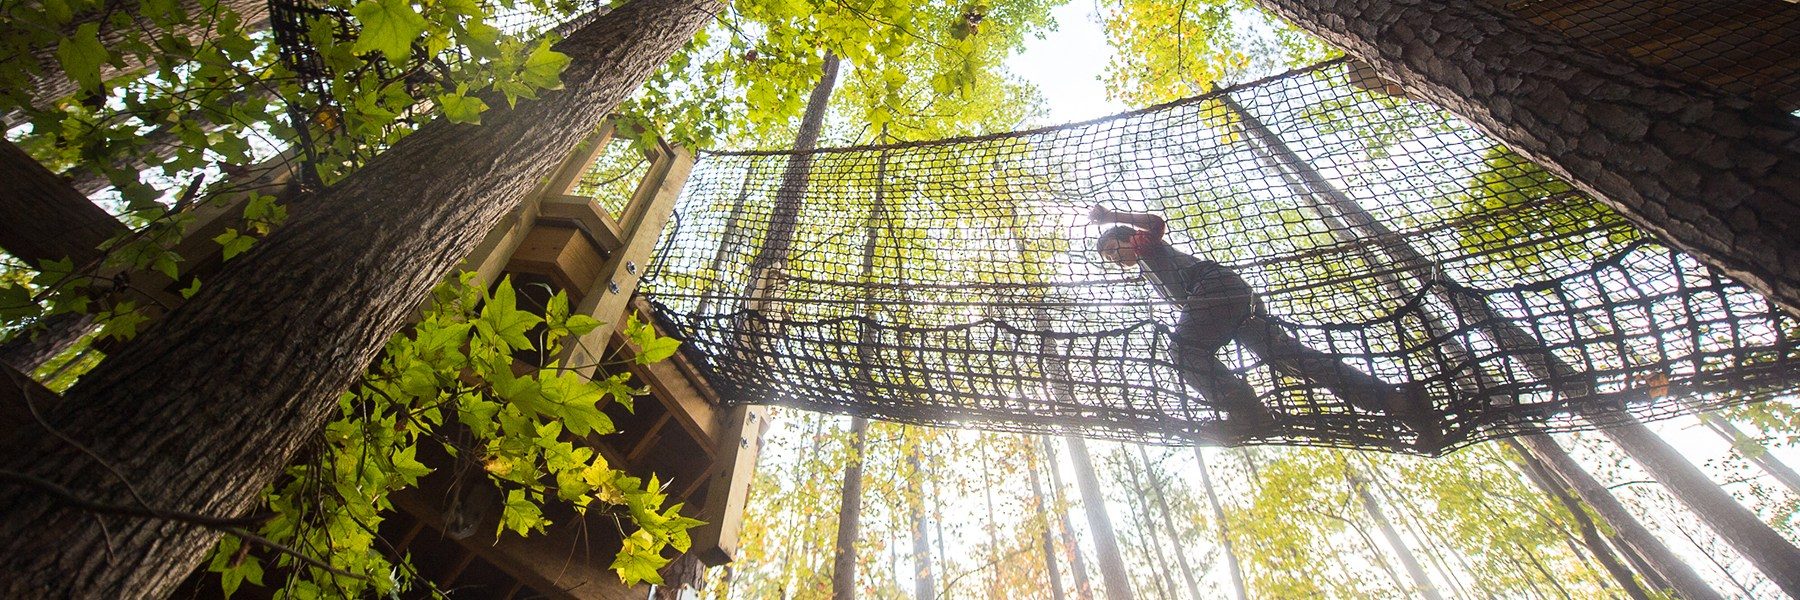 A boy climbs a rope bridge connecting two treehouses.